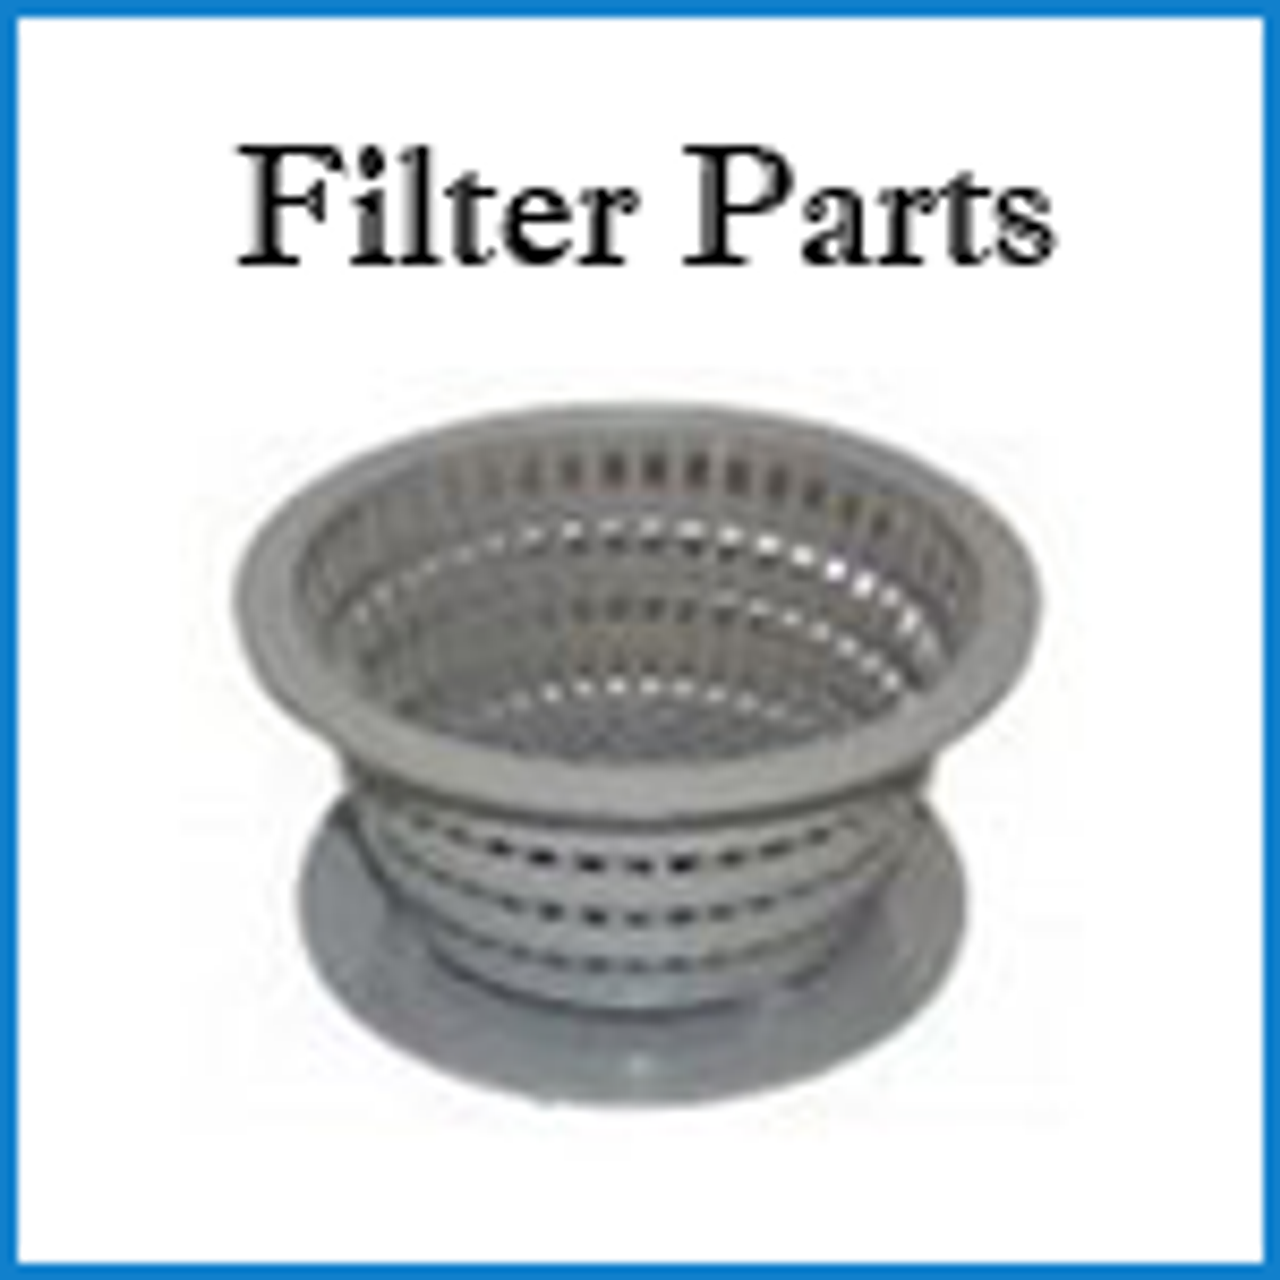 Cal Spas Filter Parts Lids